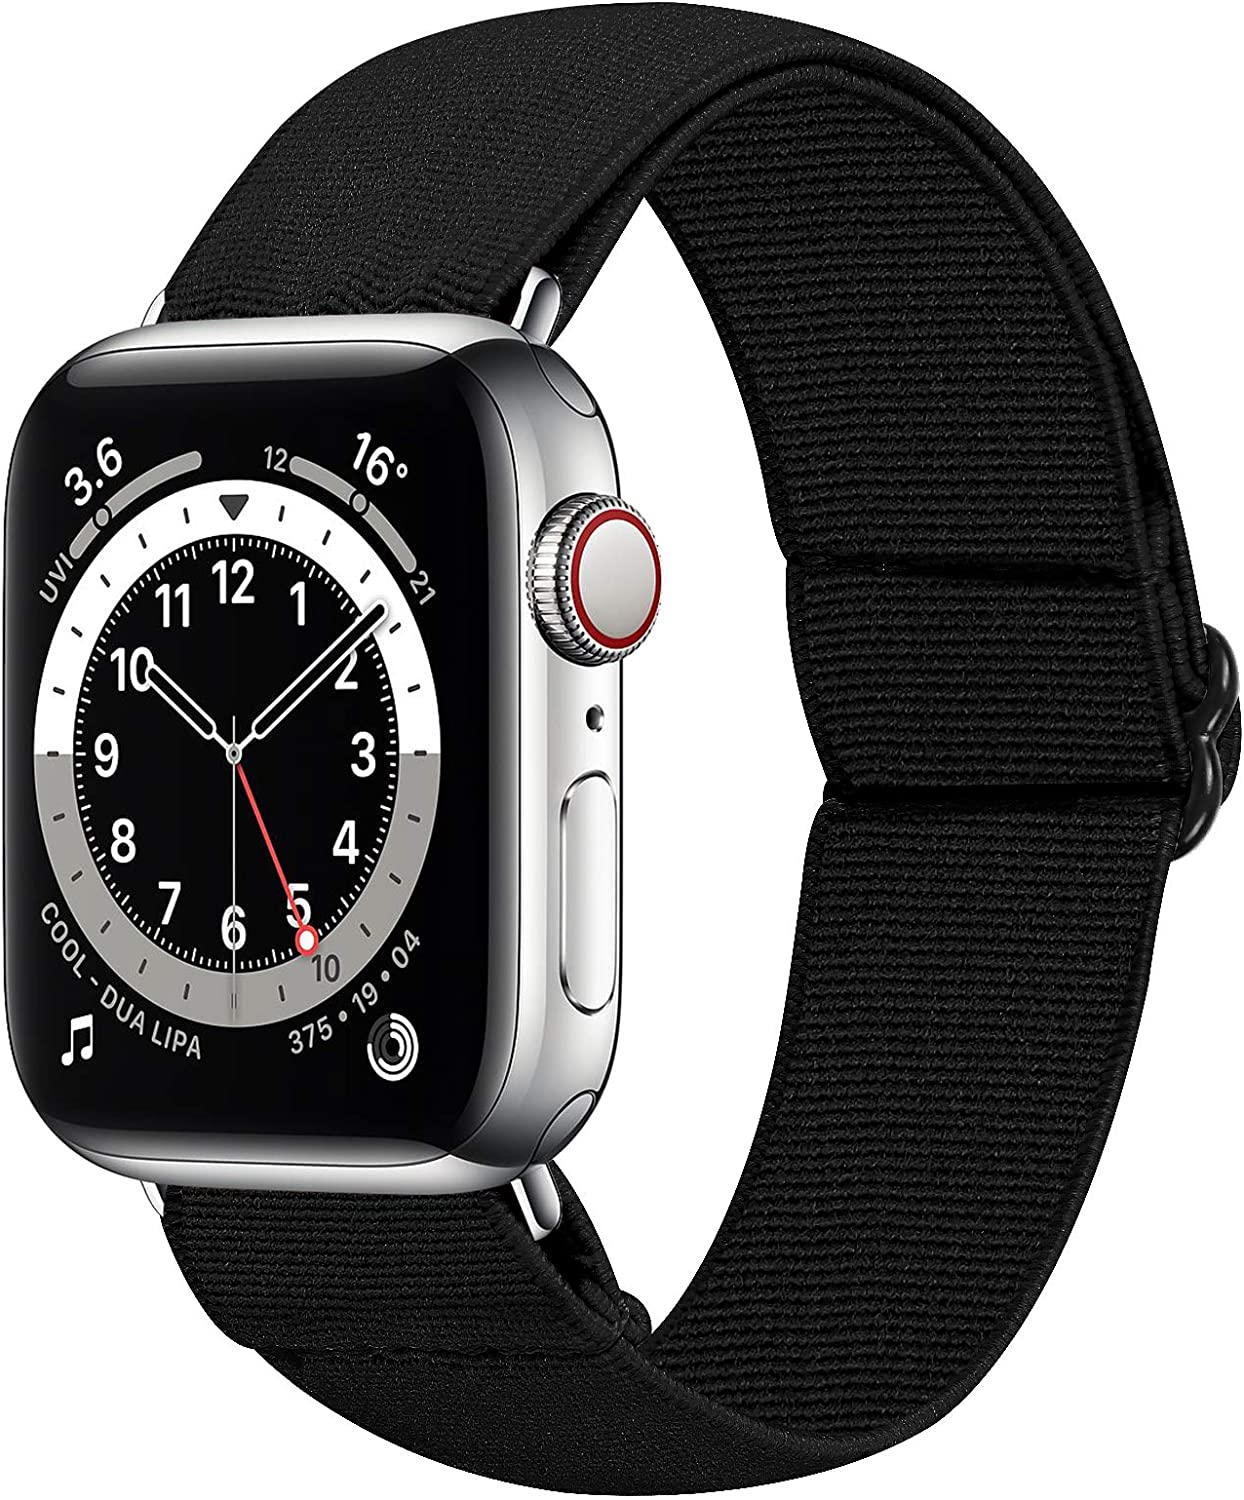 HAYUL Stretchy Nylon Bands Compatible with Apple Watch Bands 38mm 40mm 42mm 44mm, Adjustable Sport Elastics Women Men Wristband for iWatch Series 6/5/4/3/2/1 SE (Black, 38/40mm)